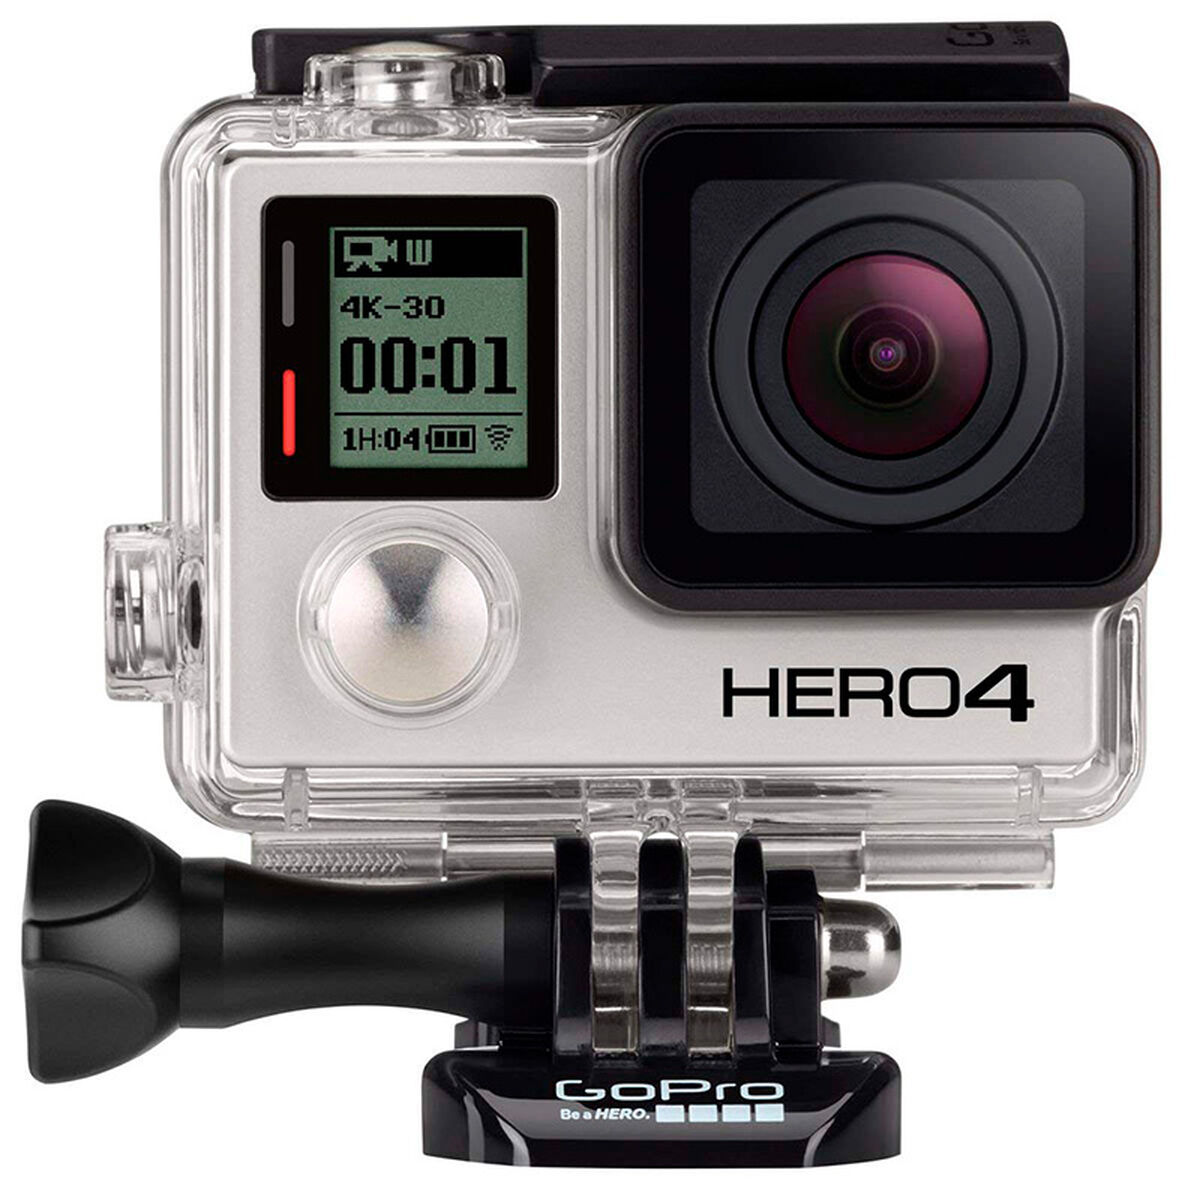 Cámara GoPro Reacondicionada HERO4 4K30 Black Edition